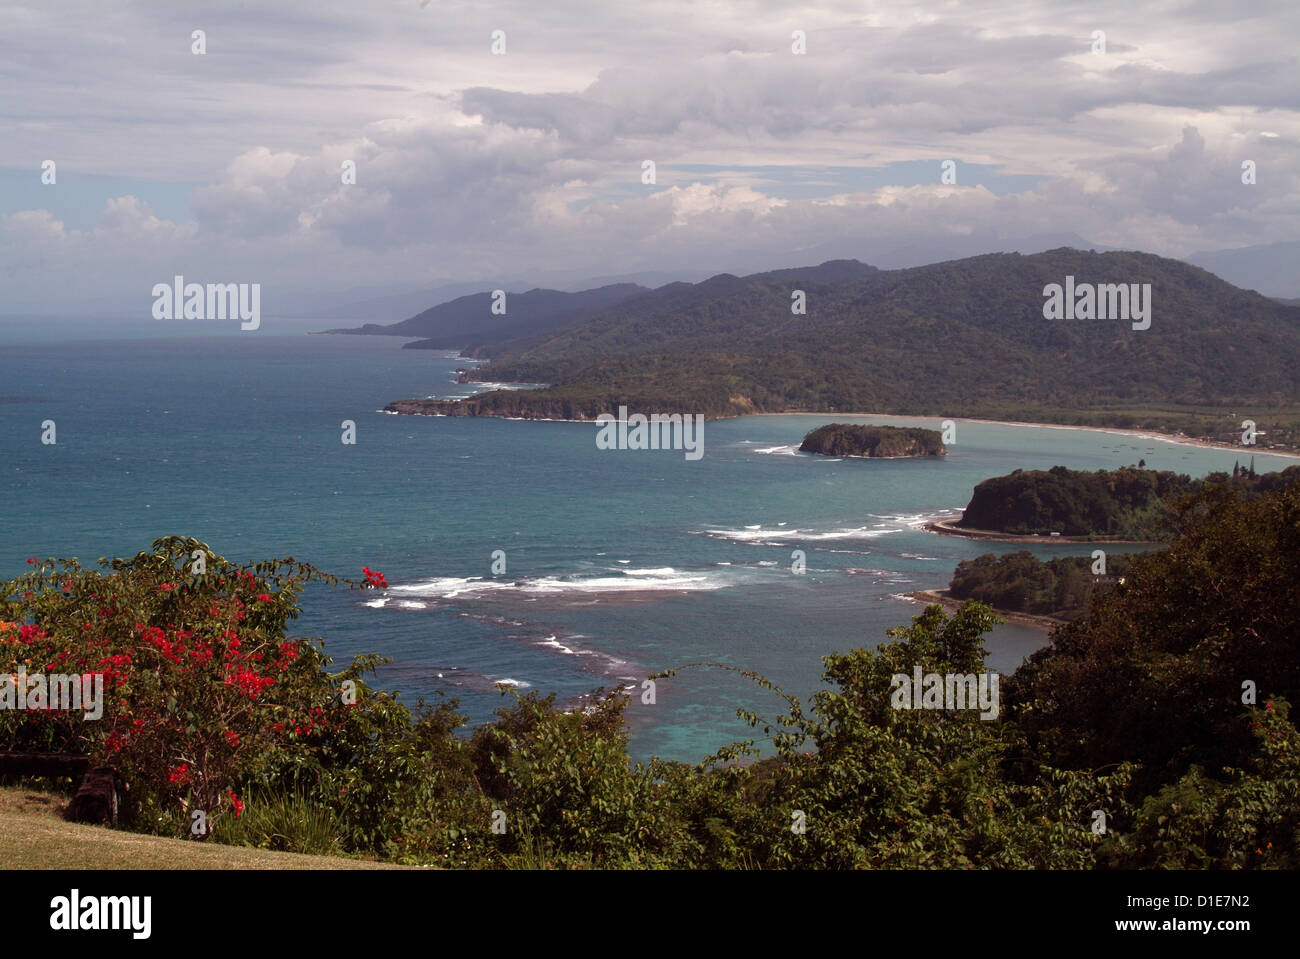 View from Noel Coward's home, Firefly, Port Maria, Jamaica, West Indies, Caribbean, Central America - Stock Image